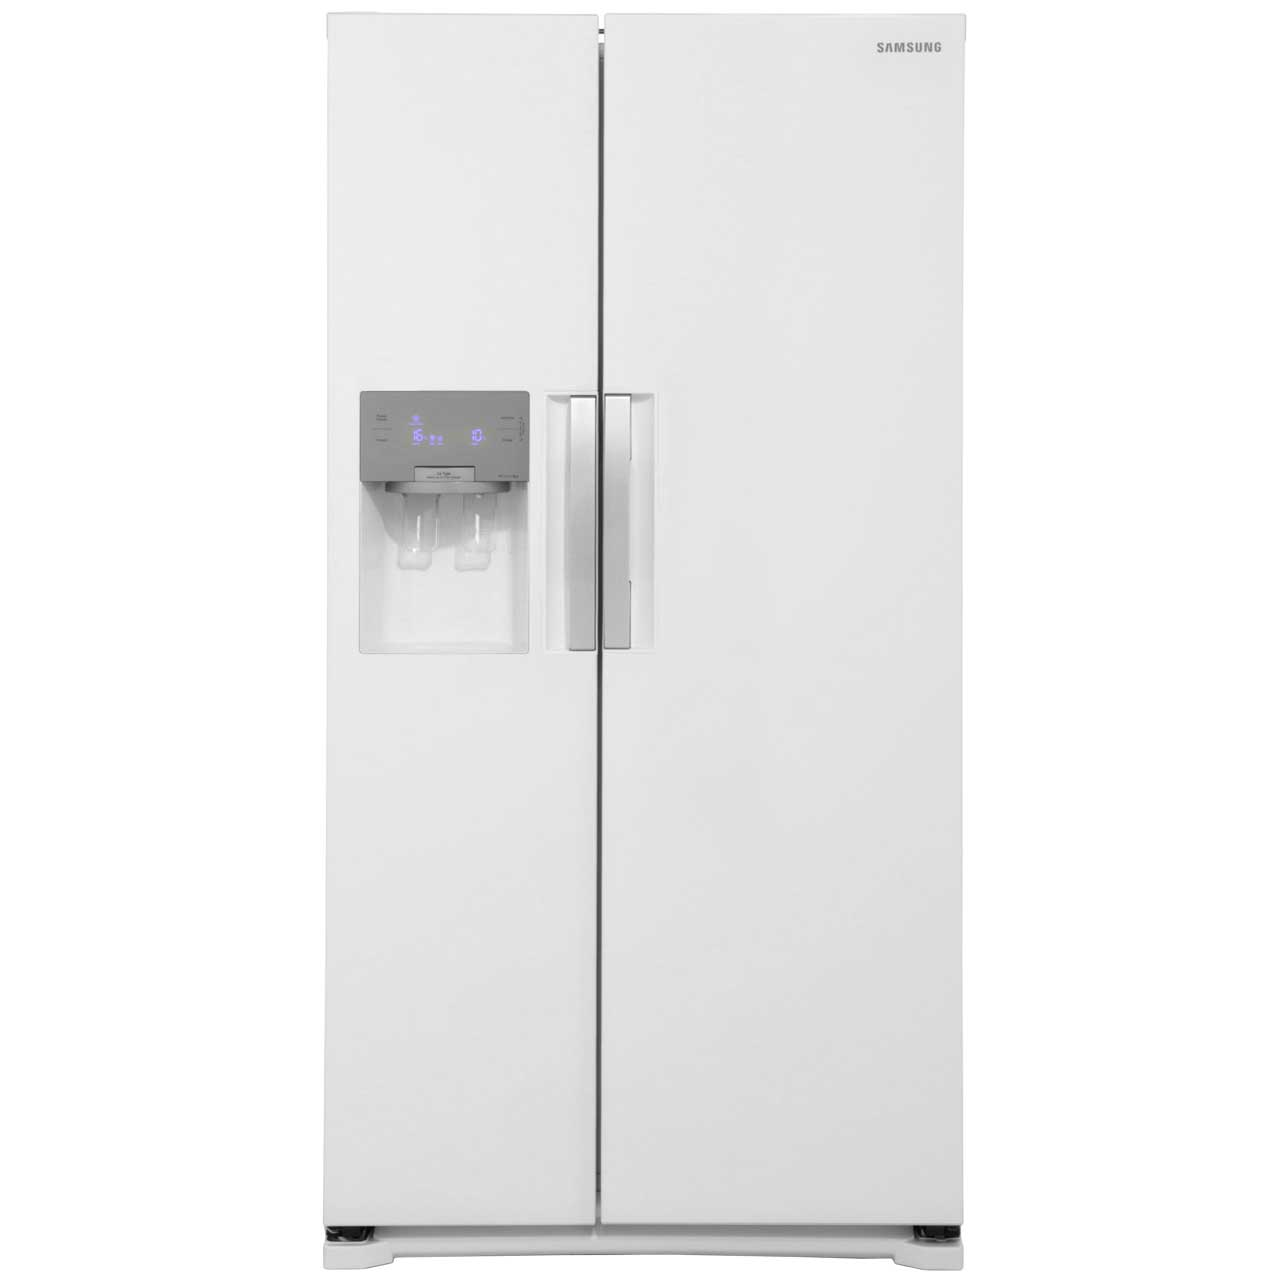 Samsung HSeries RS7667FHCWW Free Standing American Fridge Freezer in Gloss White